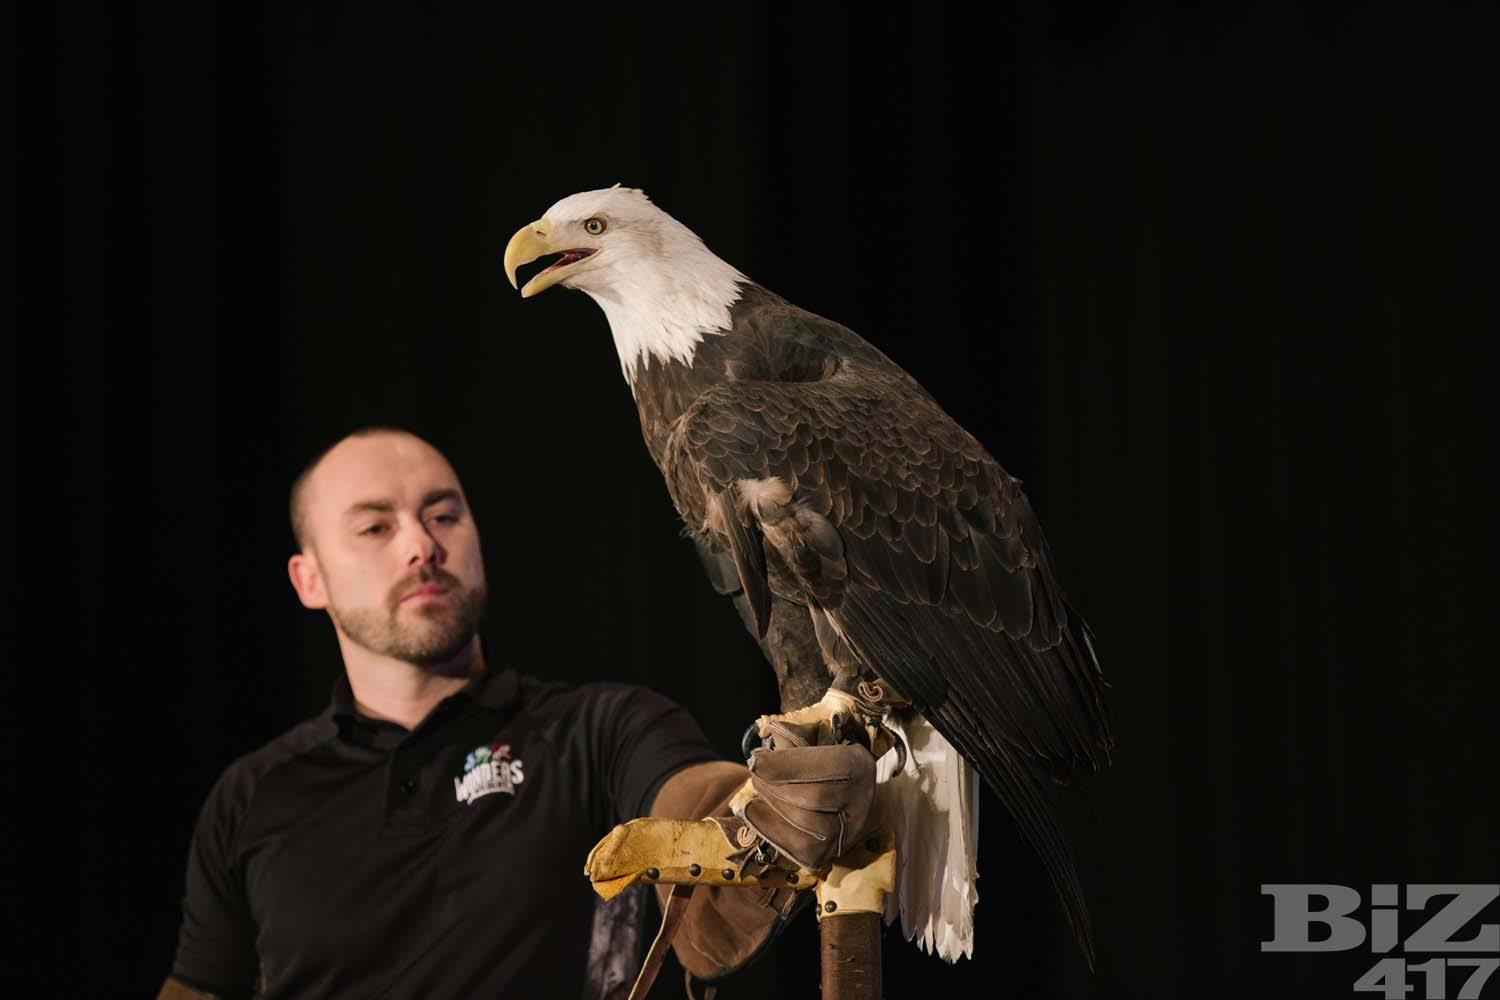 Ben Brandell holds Capella the bald eagle. Photo by Brad Zweerink